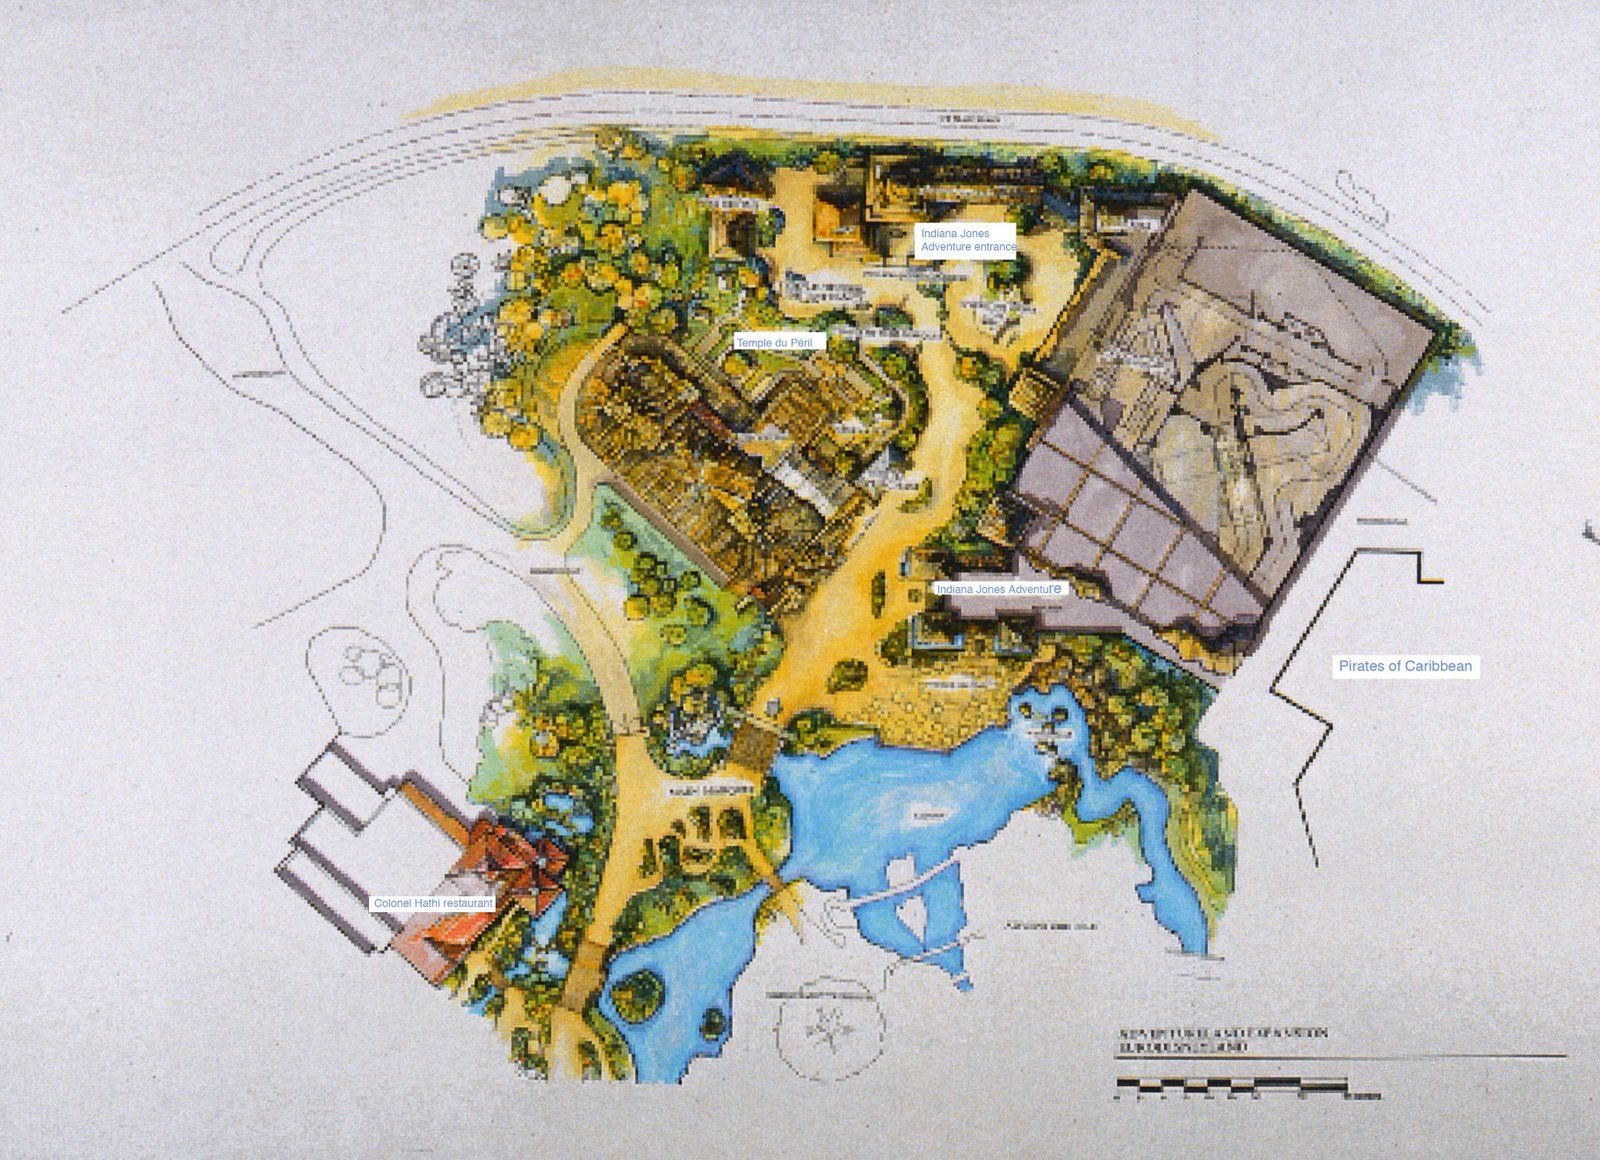 California Map Disney%0A Concept map showing the Indiana Jones Adventure ride next to Indiana Jones  et le Temple du Peril at Disneyland Paris  never built